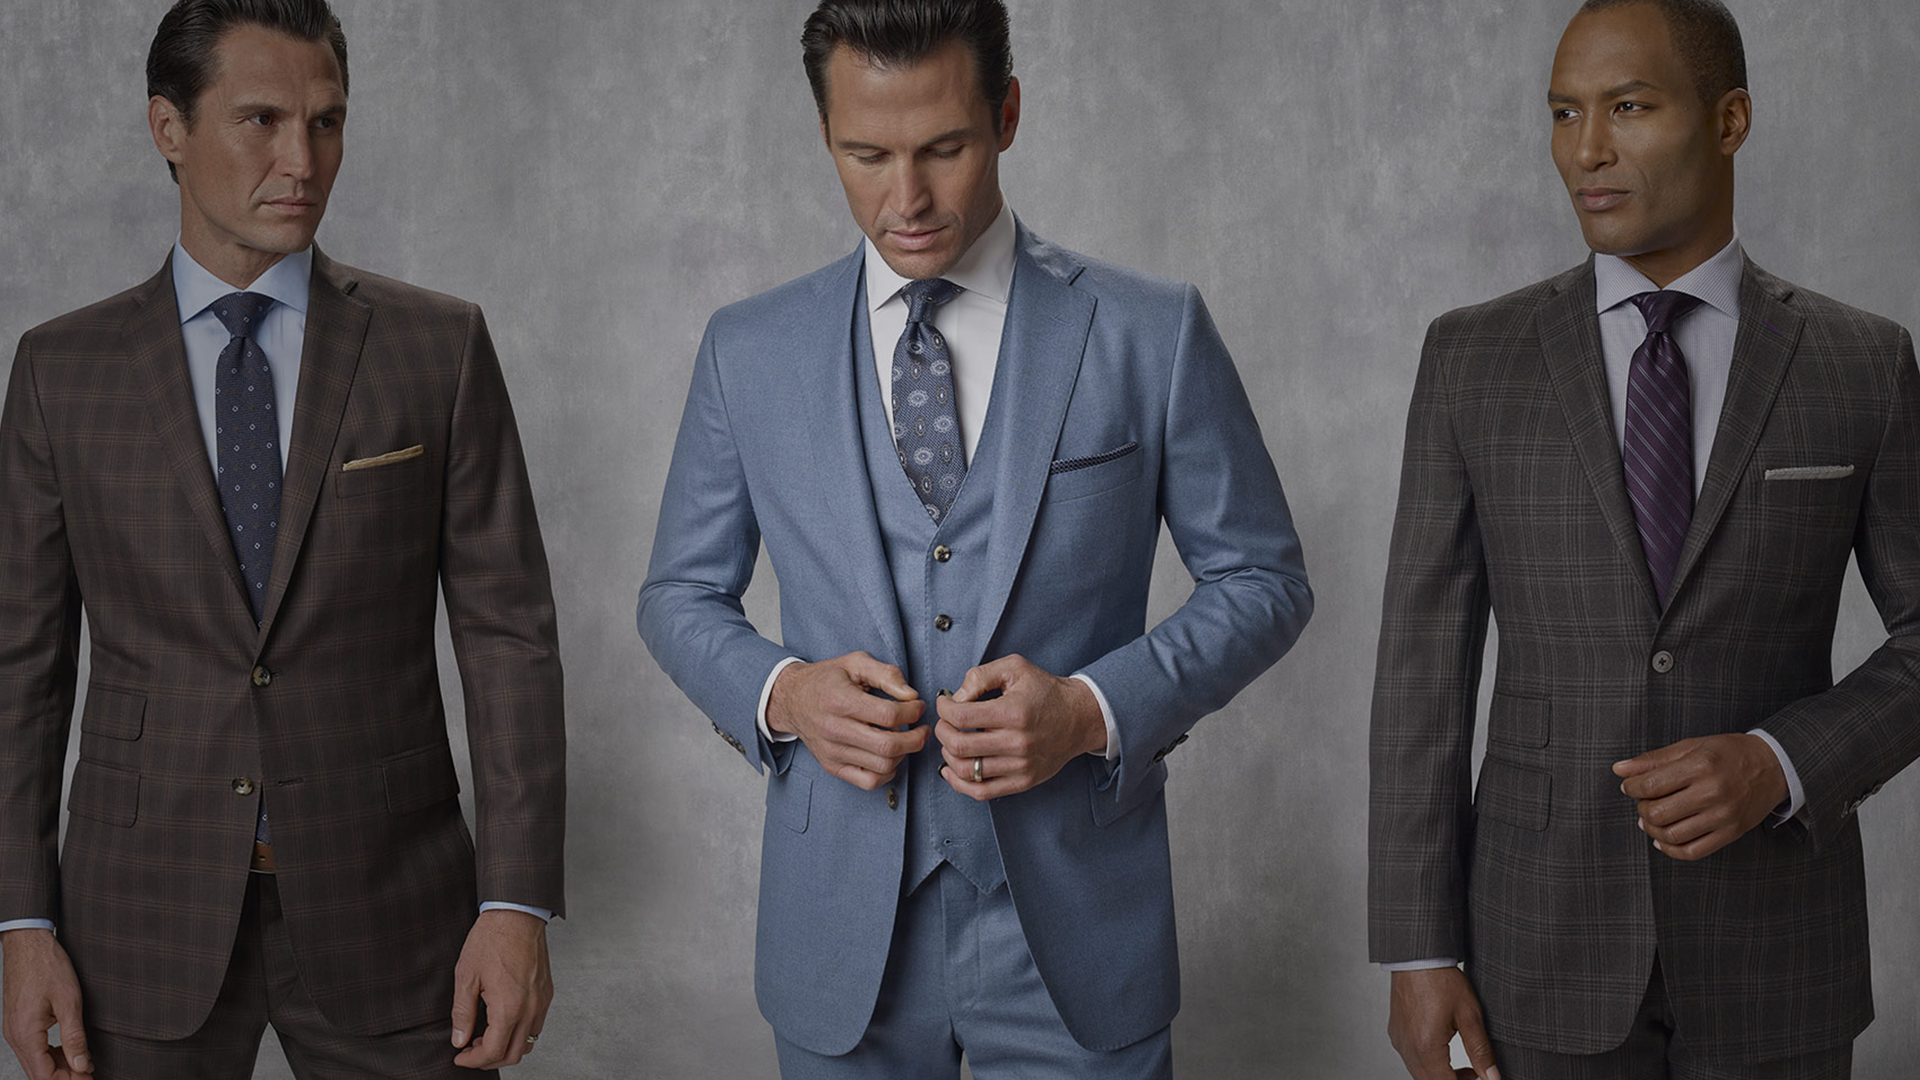 Tom James Company reviews | Formal Wear at 9089 Clairemont Mesa Blvd. - San Diego CA